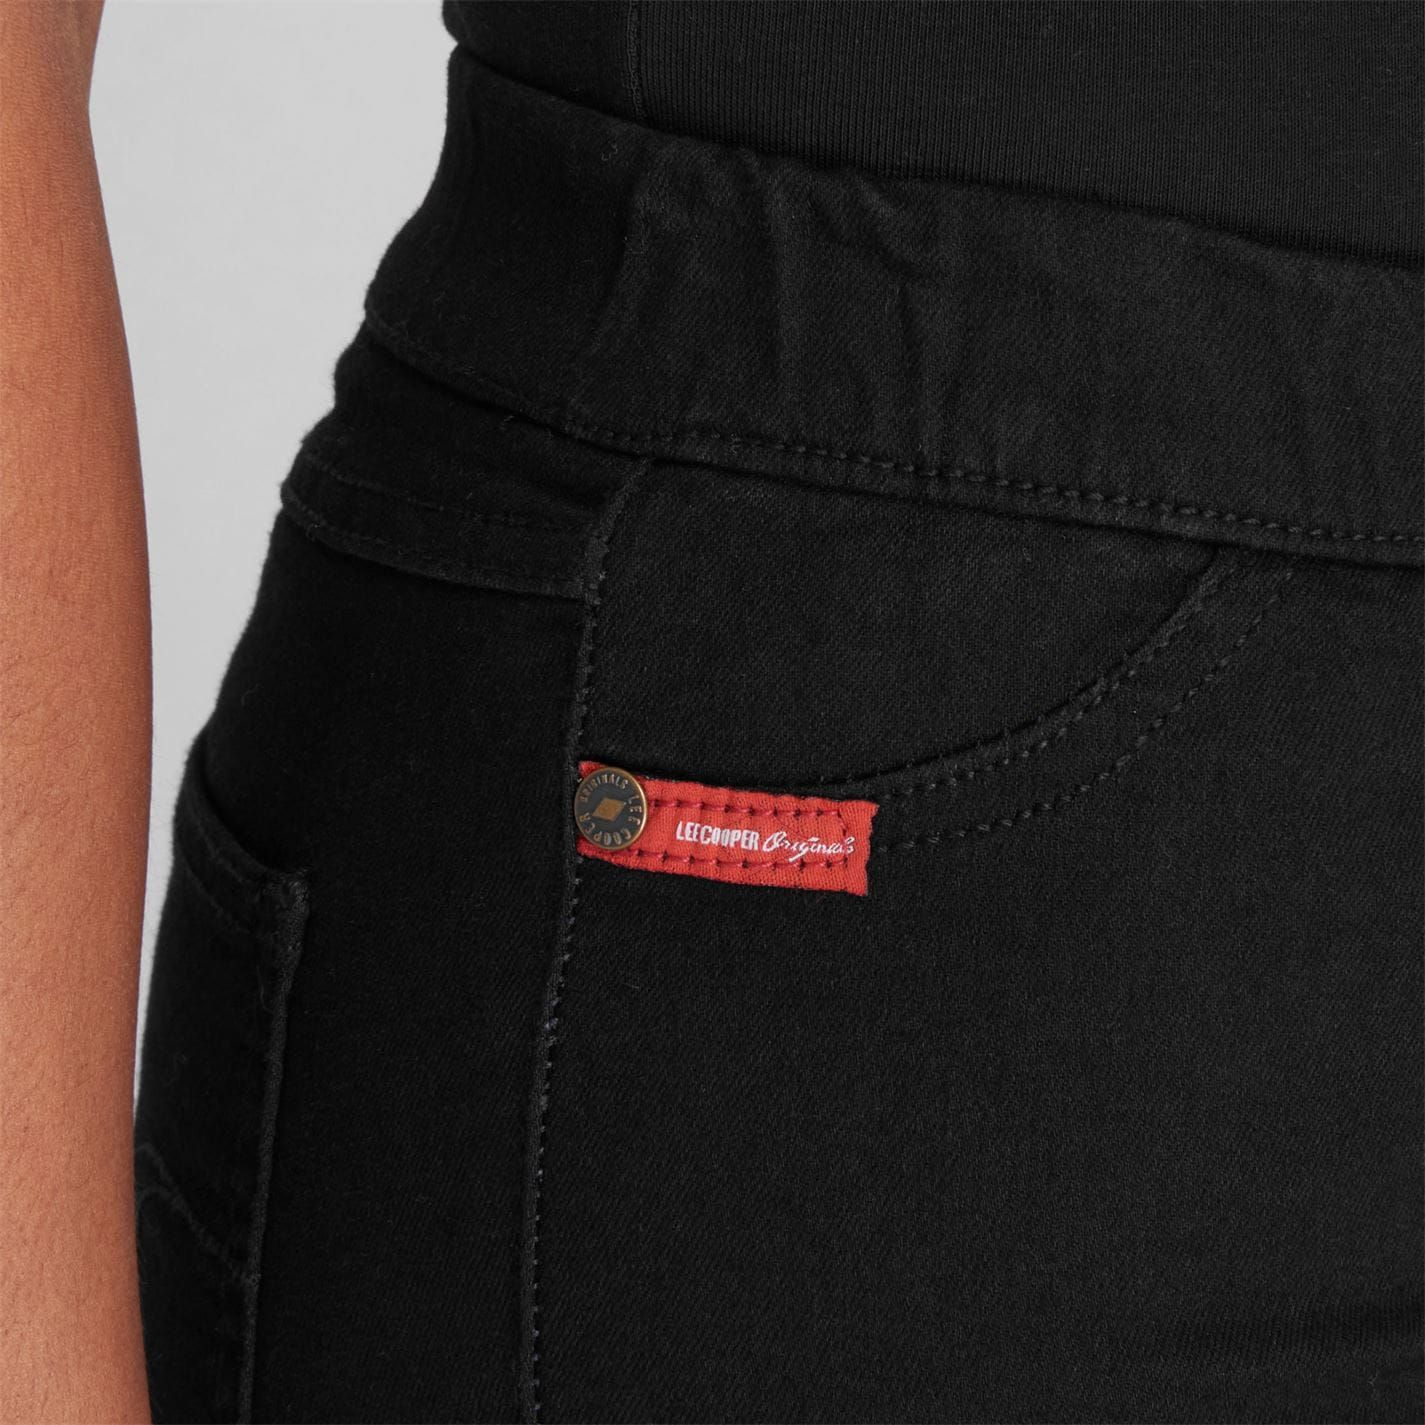 Lee Cooper Womens Jeans Jeggings Skinny Fit Lightweight Casual Button Fastening